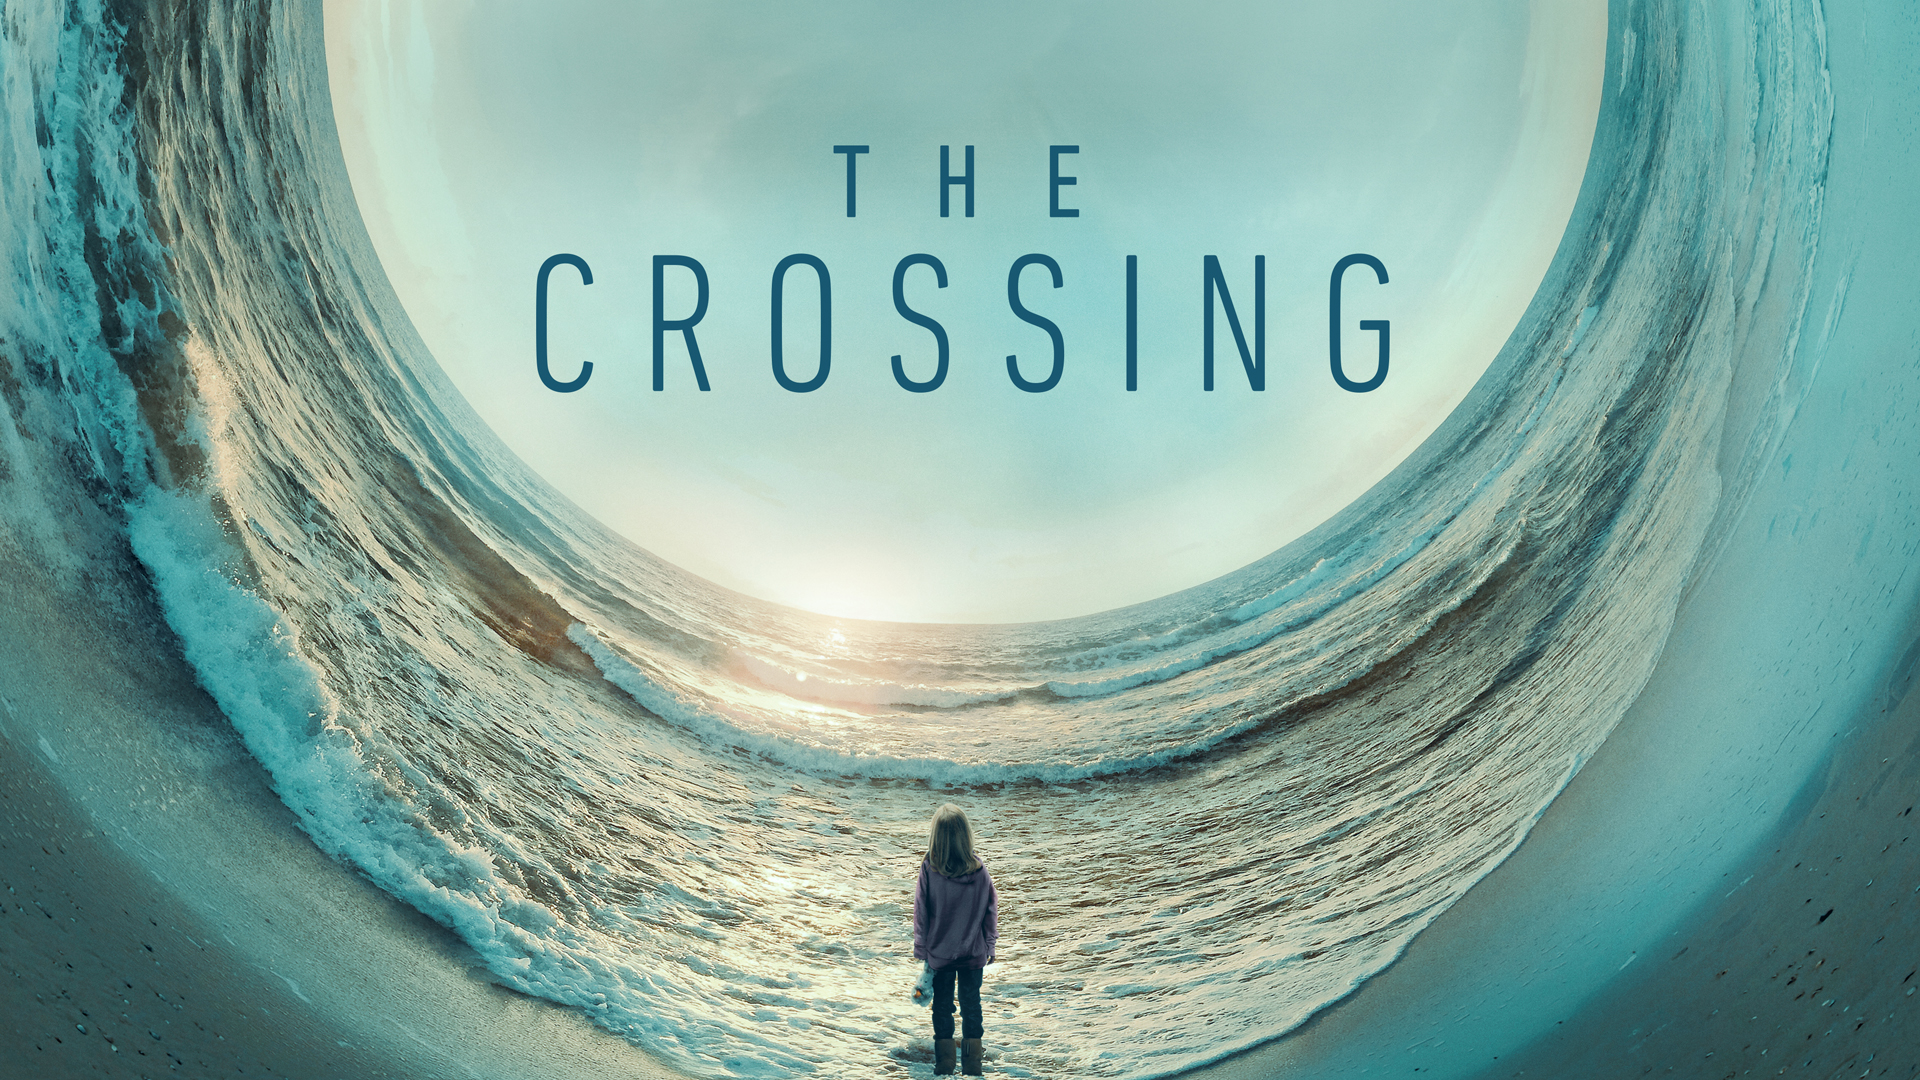 The Crossing, dia 15 de abril no TvCine e Séries